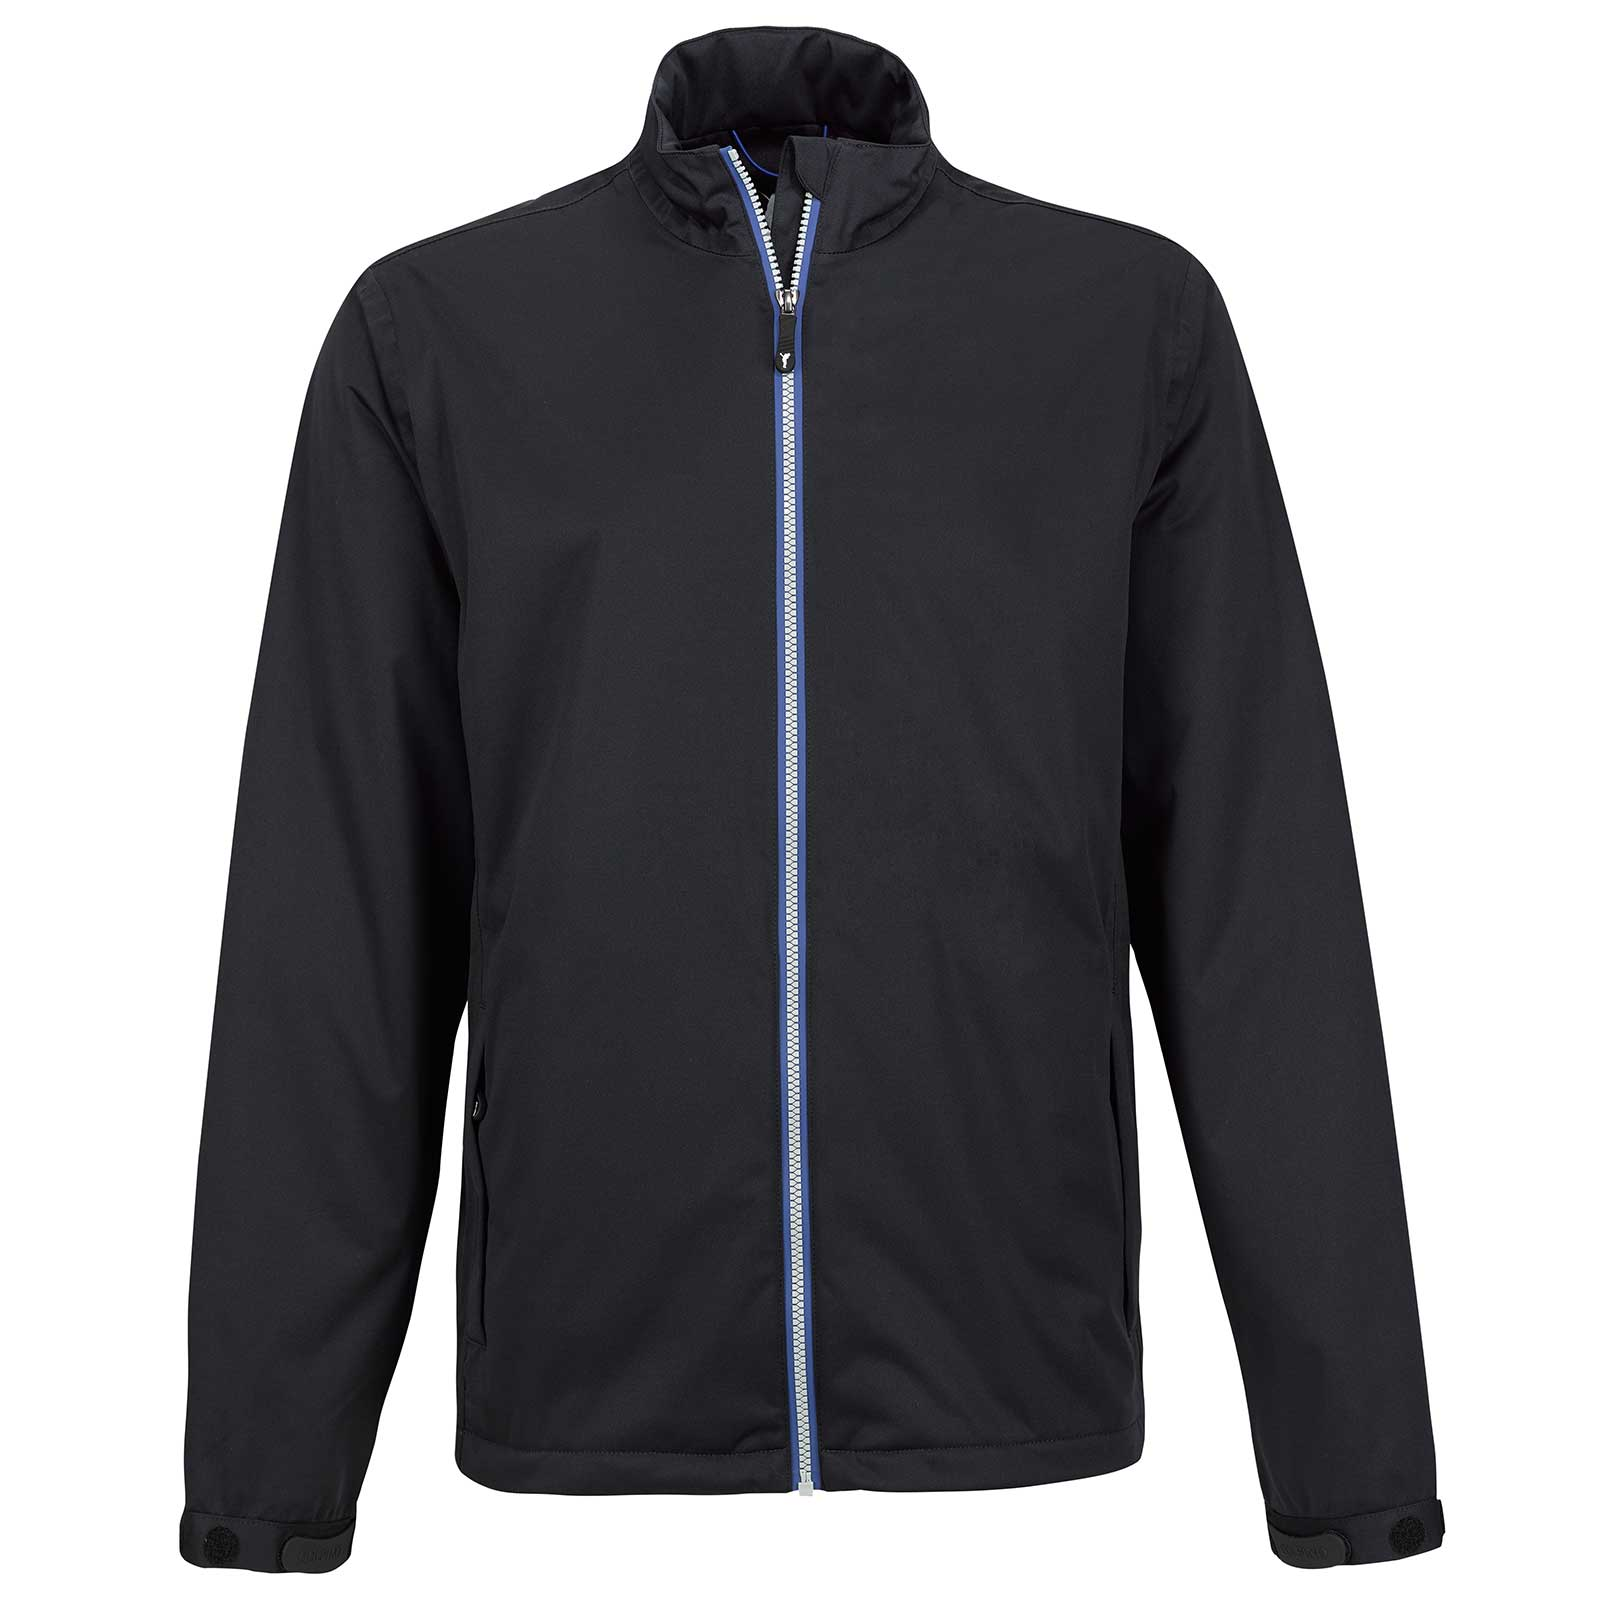 Water- and windproof men's rain jacket without hood with light lining